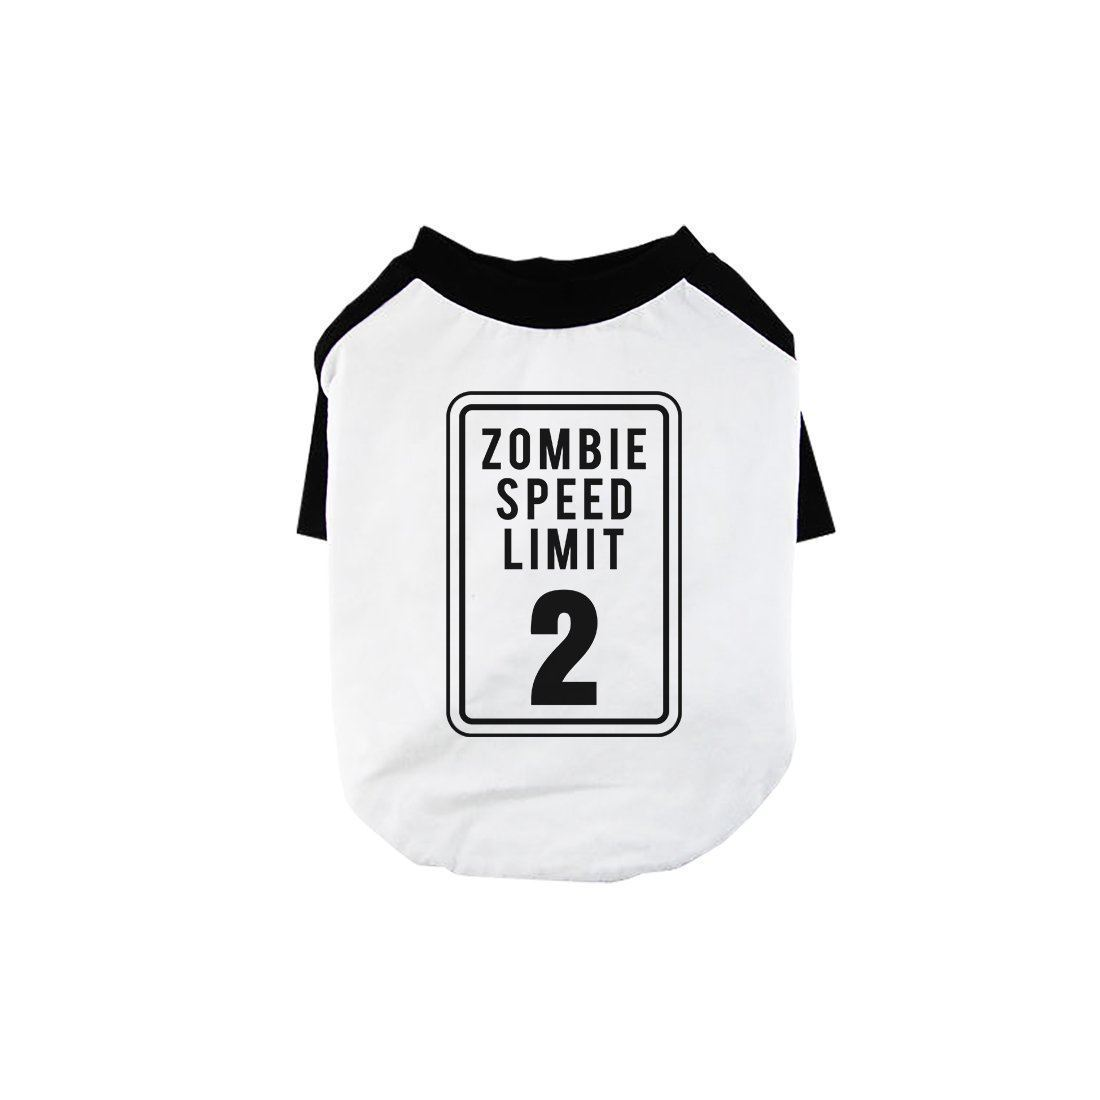 Zombie Speed Limit Pet Baseball Shirt for Small Dogs